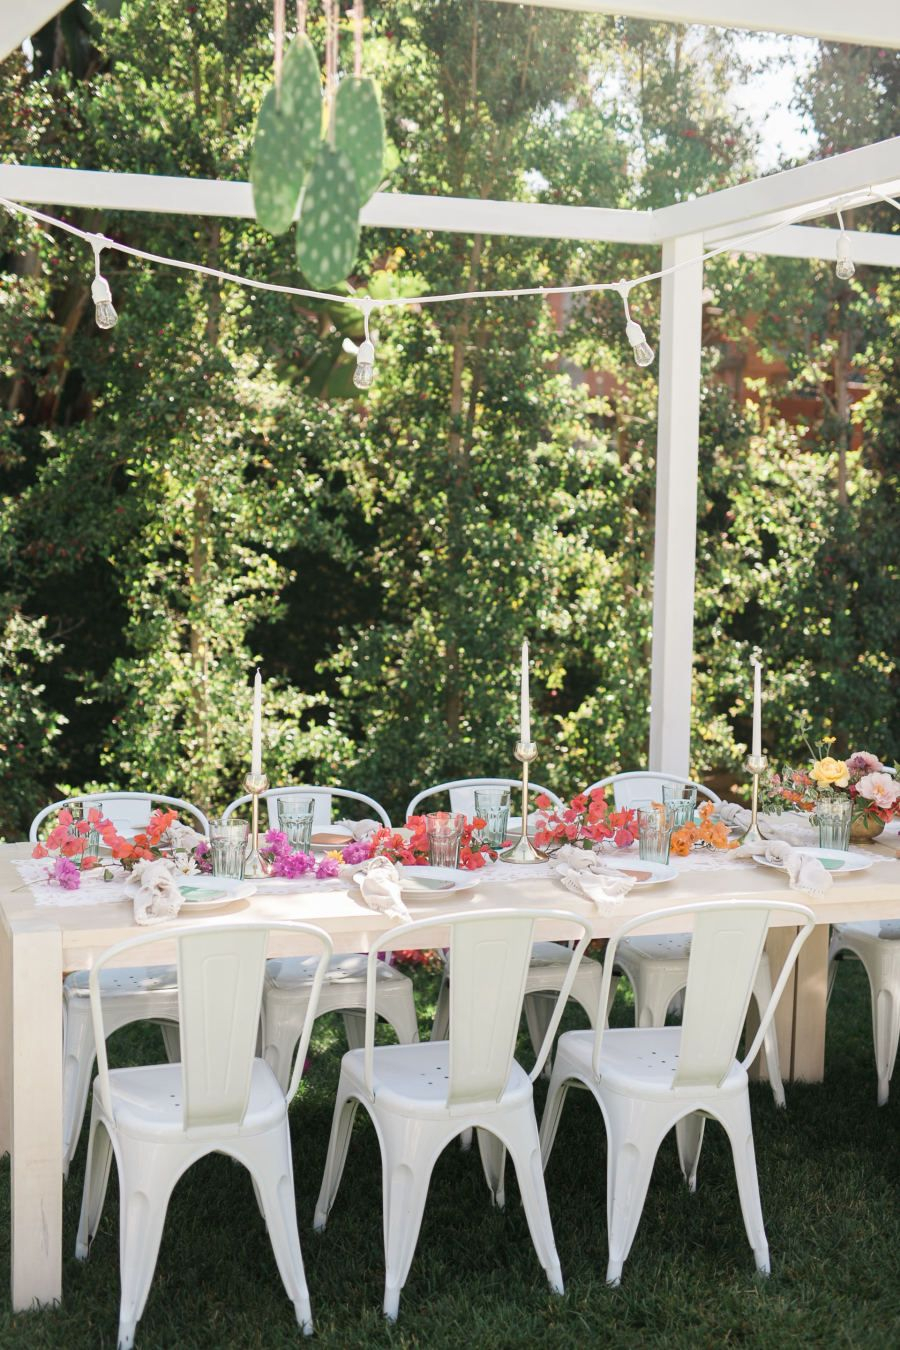 You Wont Believe This Was A Diy Wedding Wedding Tables Table for 10 Genius Concepts of How to Upgrade Diy Backyard Wedding Ideas